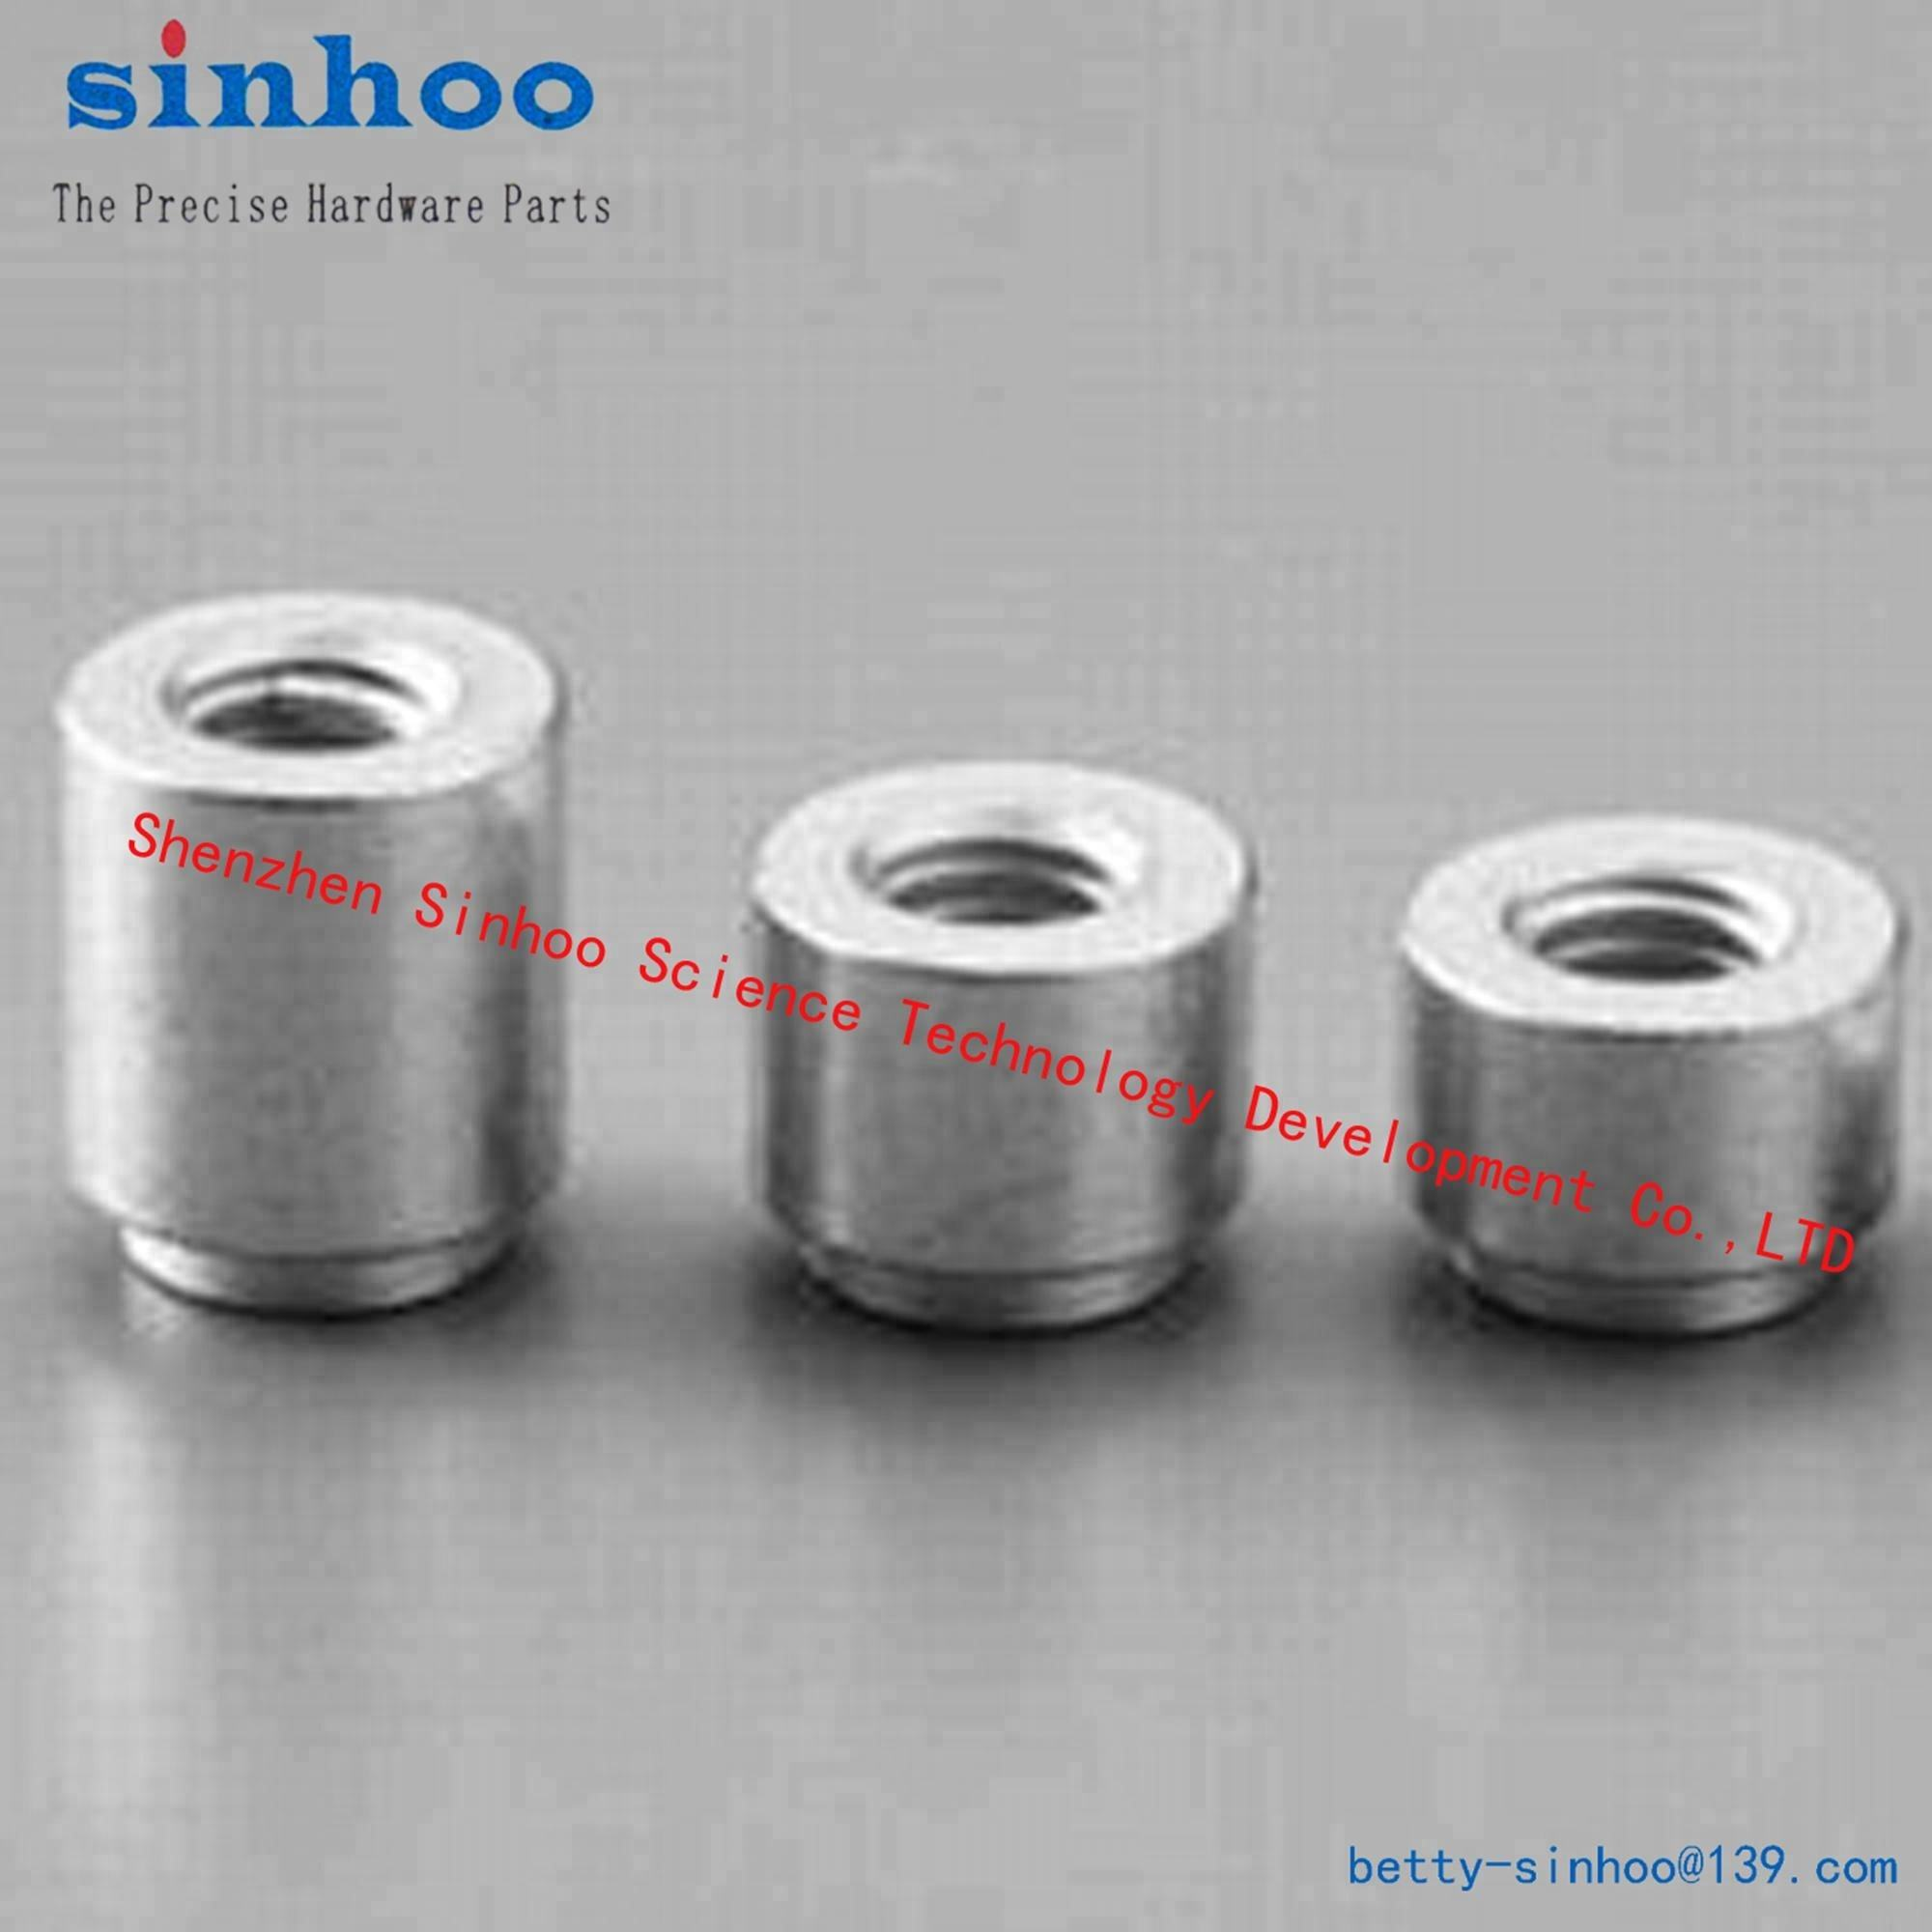 SMTSO-M2-5ET Surface mount wall mounted fasteners nut for auto mount